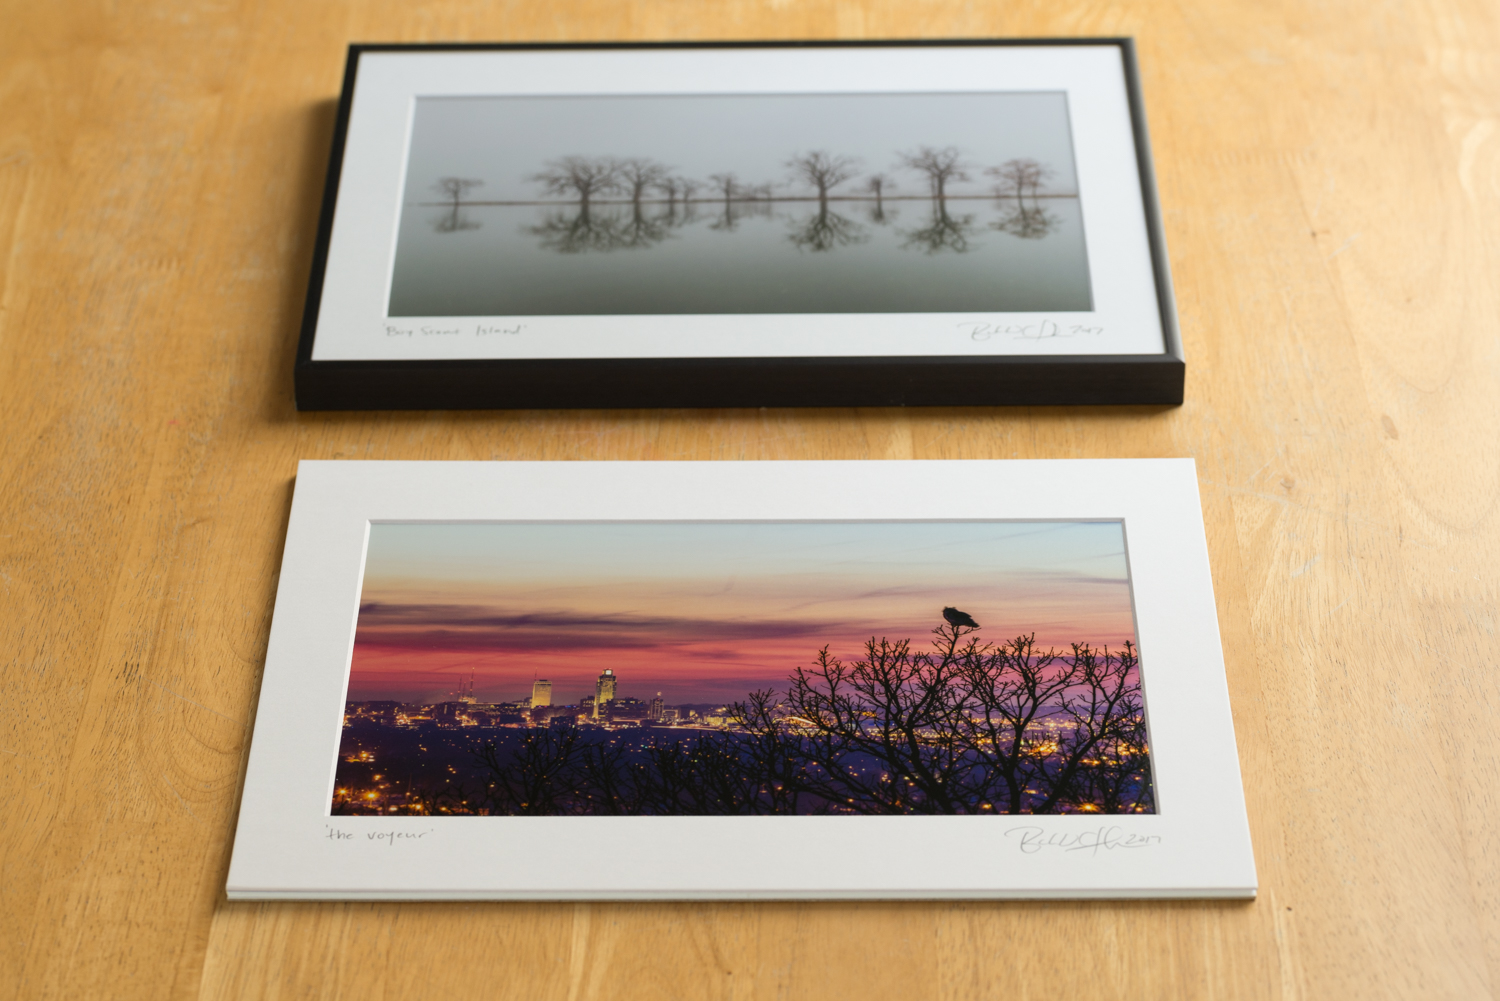 Traditional prints, 11X14, comparison of framed versus unframed. Both matted, titled, and signed.